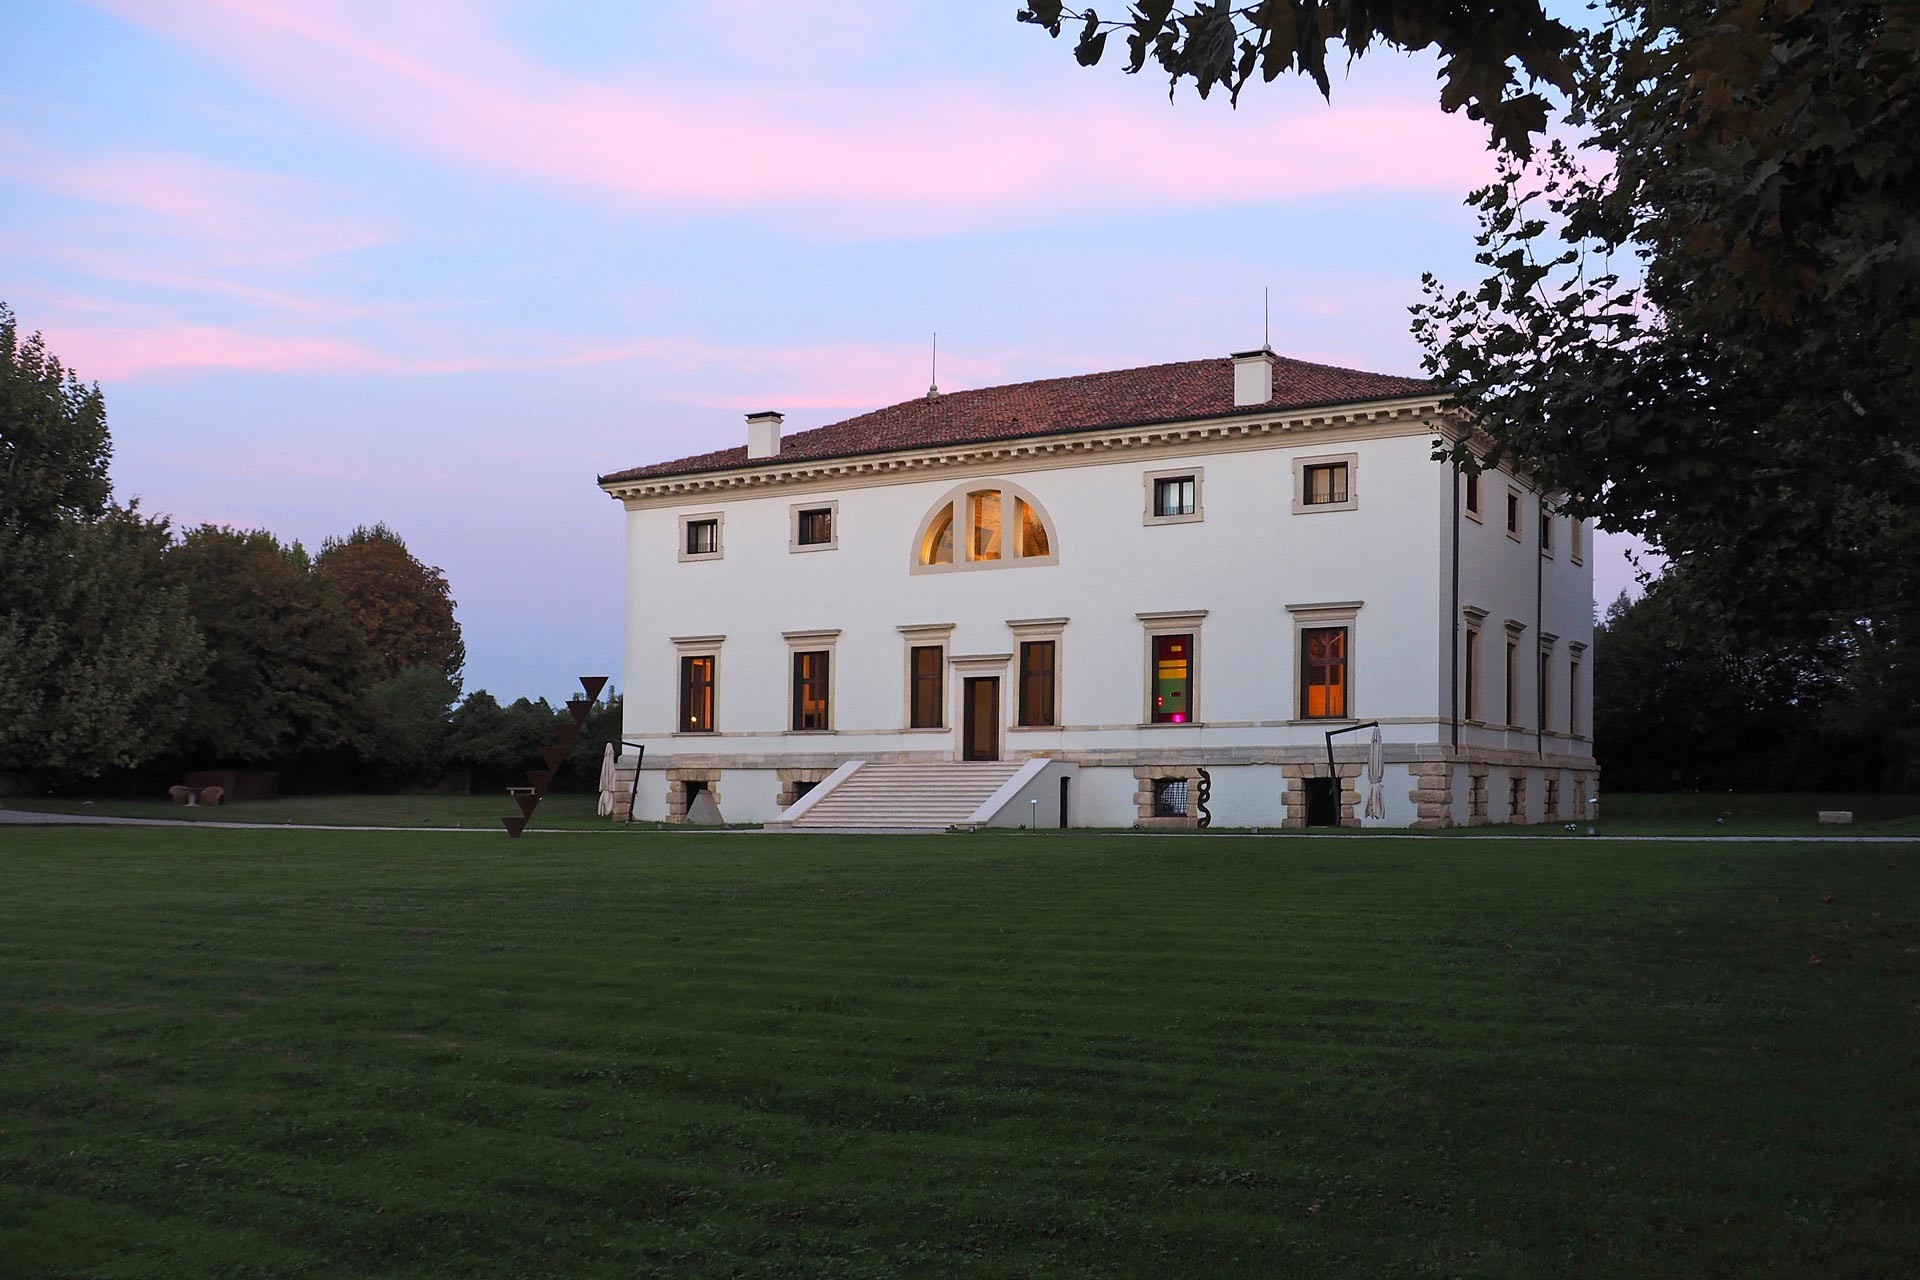 Villa Pisani is near Vicenza, a city of Veneto with some of the masterpiece projects by Andrea Palladio, the famous Italian XVI century architect. The villa is now a museum with two design suites on the top floor